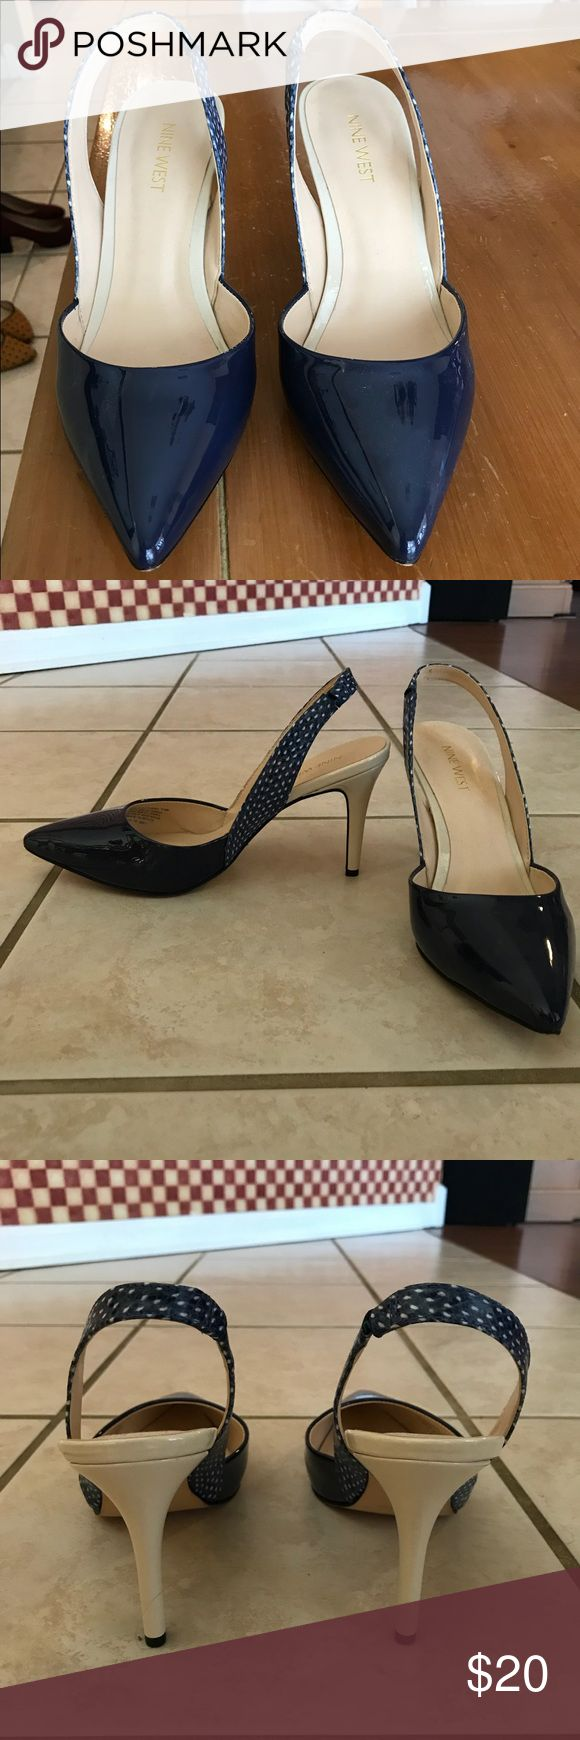 Pointed strappy heel 3.5 inch navy and white strappy heel. Only been worn once. Nine West Shoes Heels